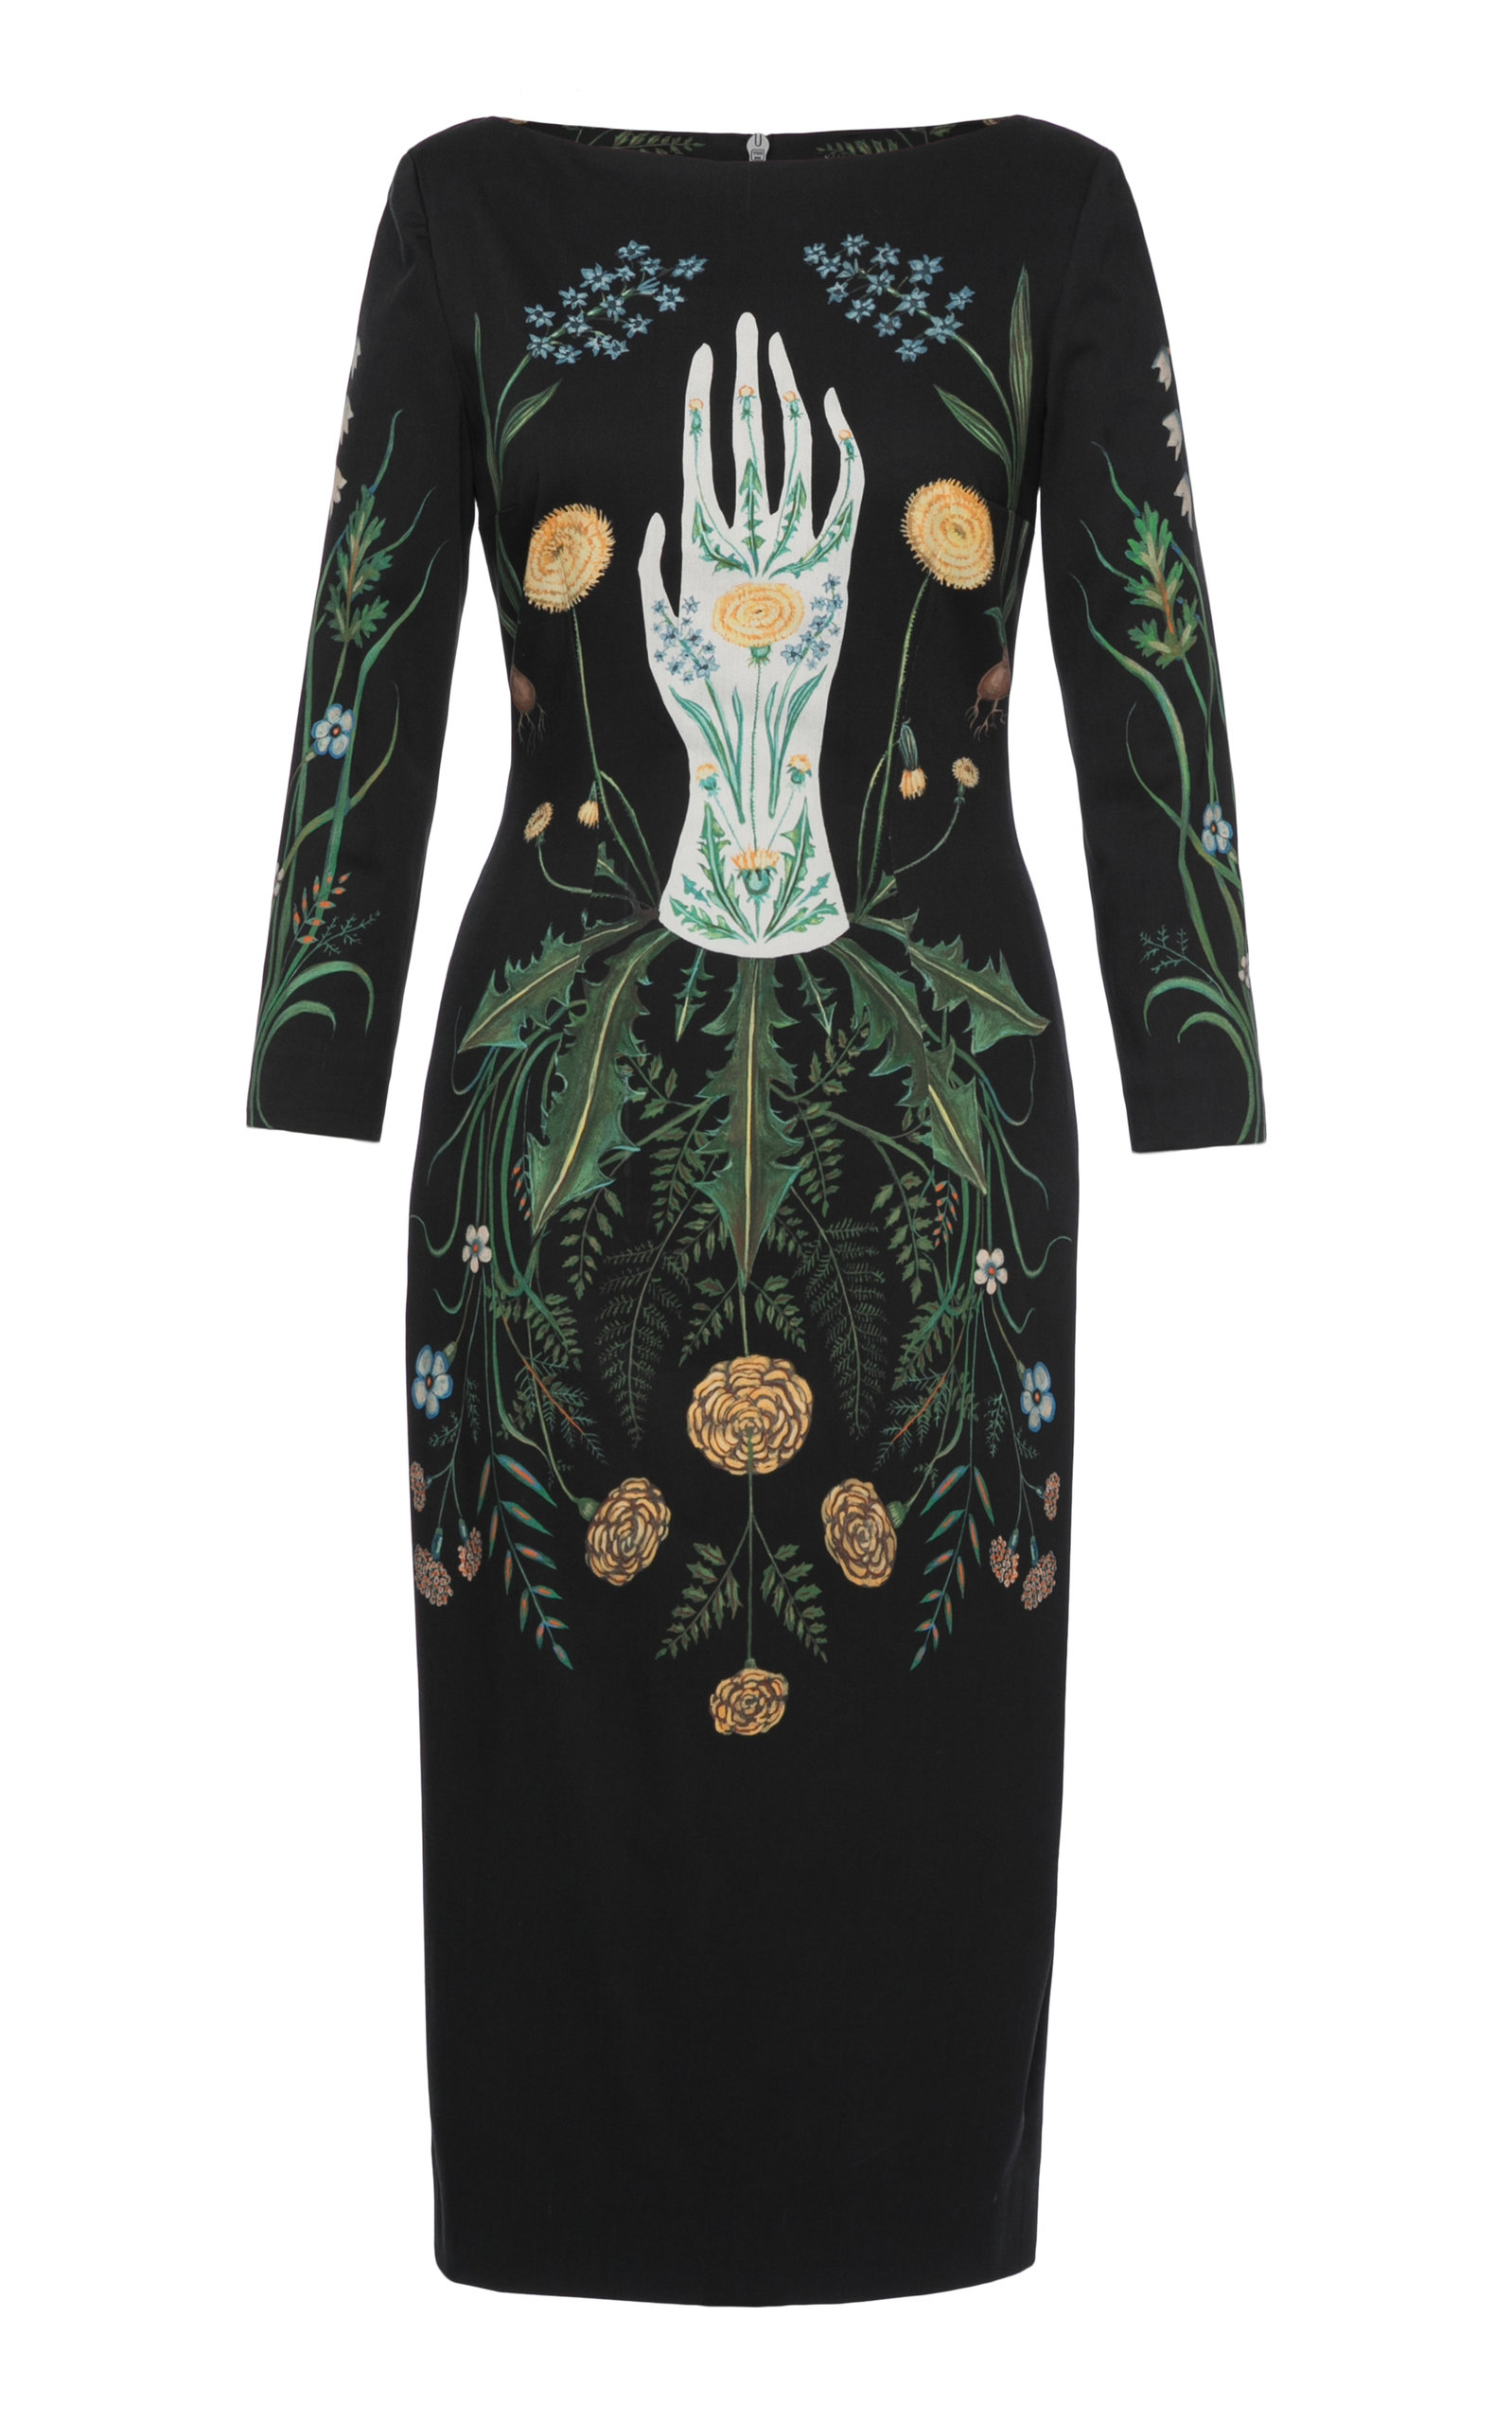 Buy Lena Hoschek Circle Of Life Printed Stretch-Cotton Midi Dress online, shop Lena Hoschek at the best price